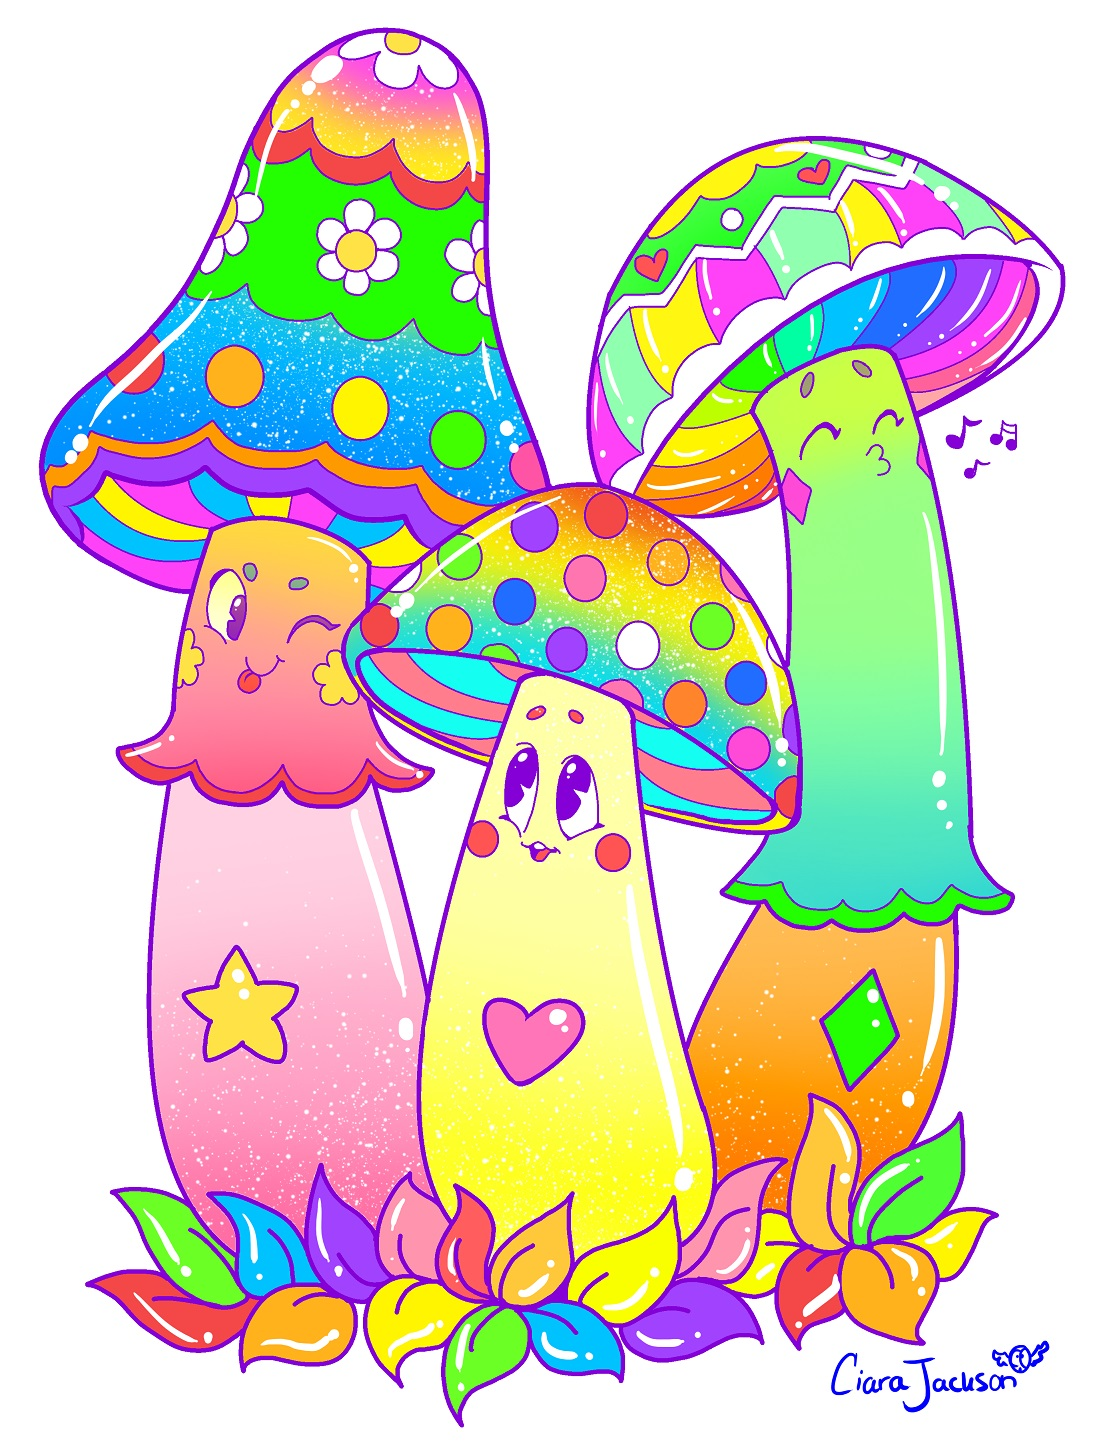 Colorful Mushroom Friends!